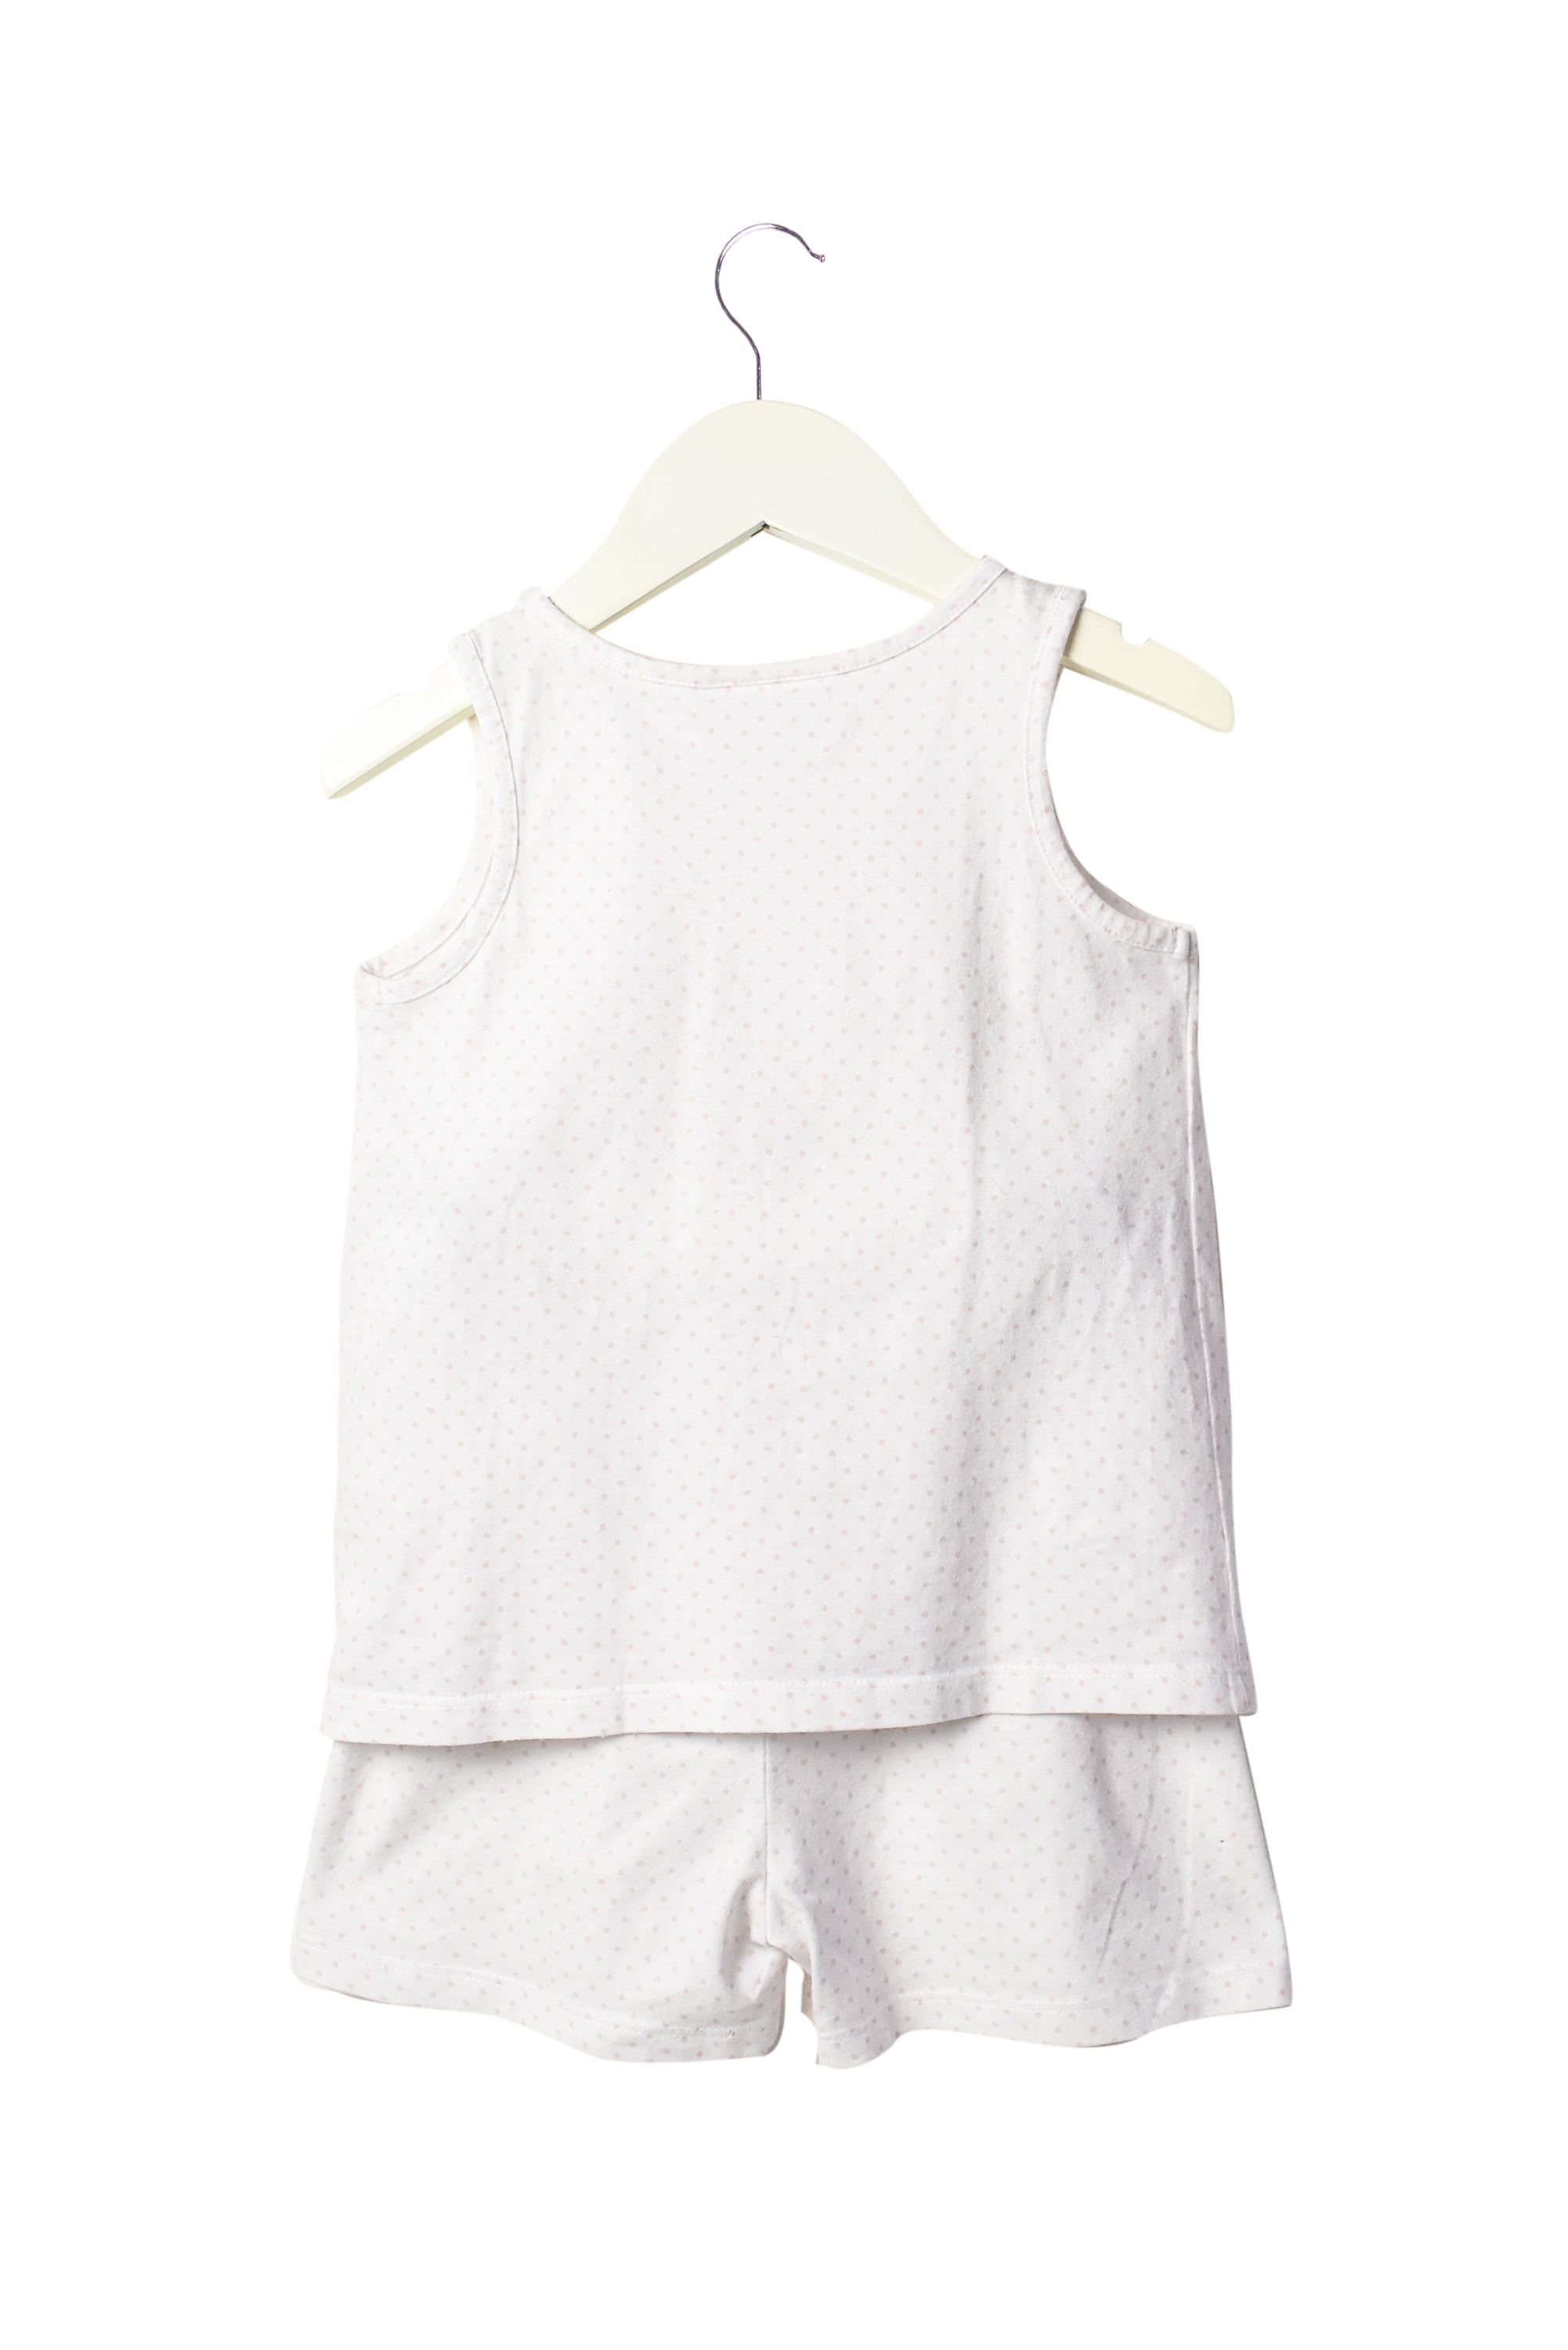 10006395 The Little White Company Baby~Pyjamas 18-24M at Retykle